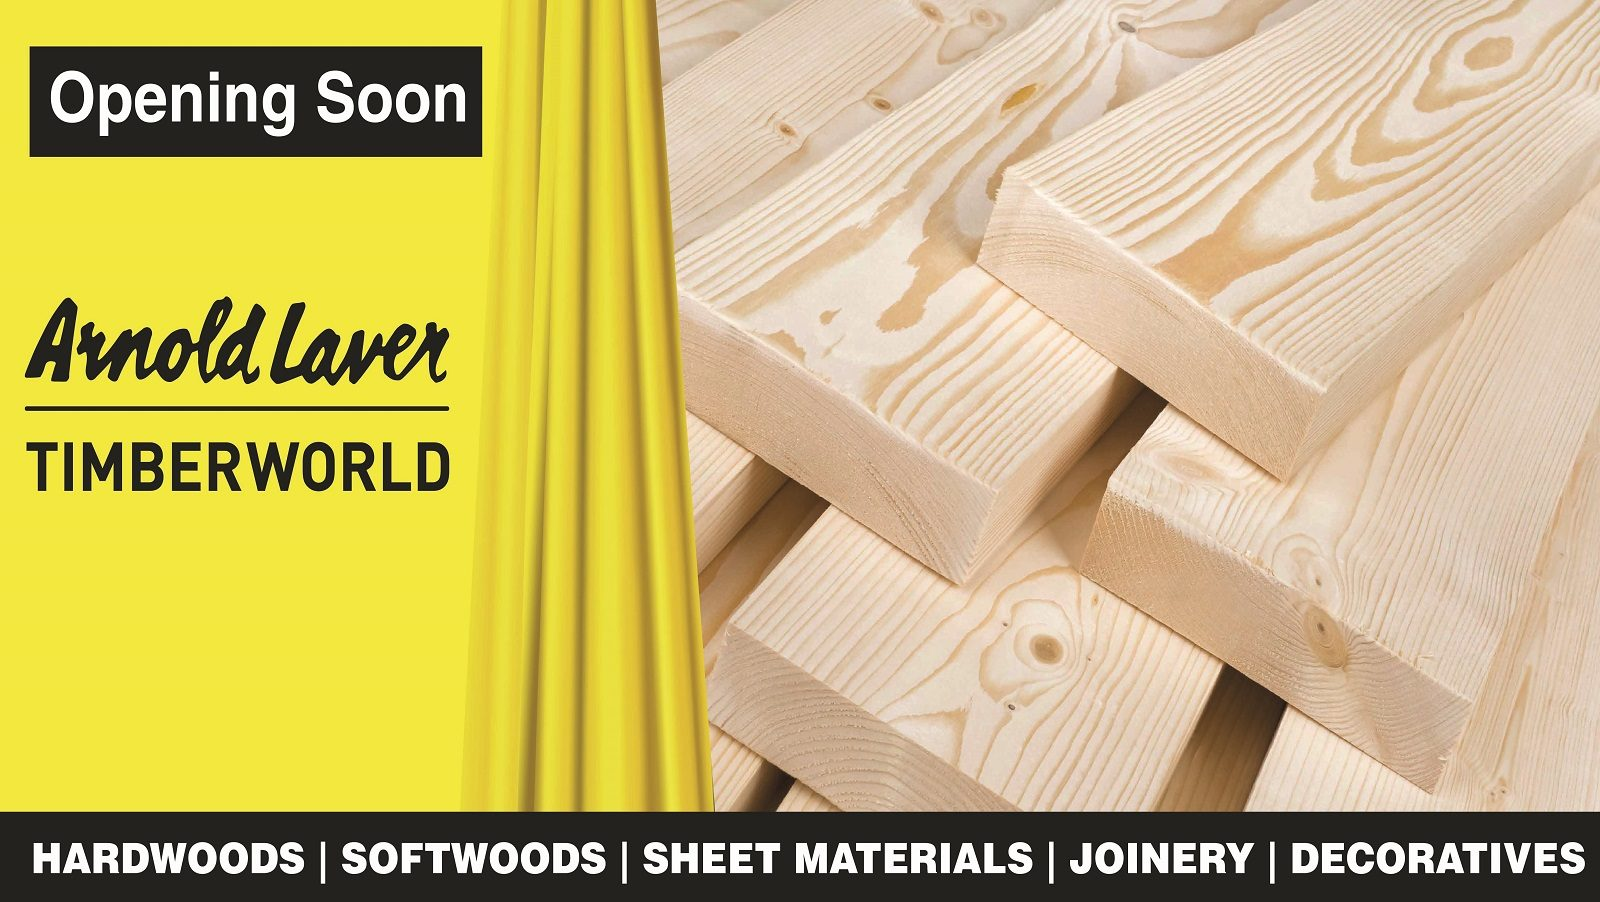 Coventry-timberworld-opening-soon